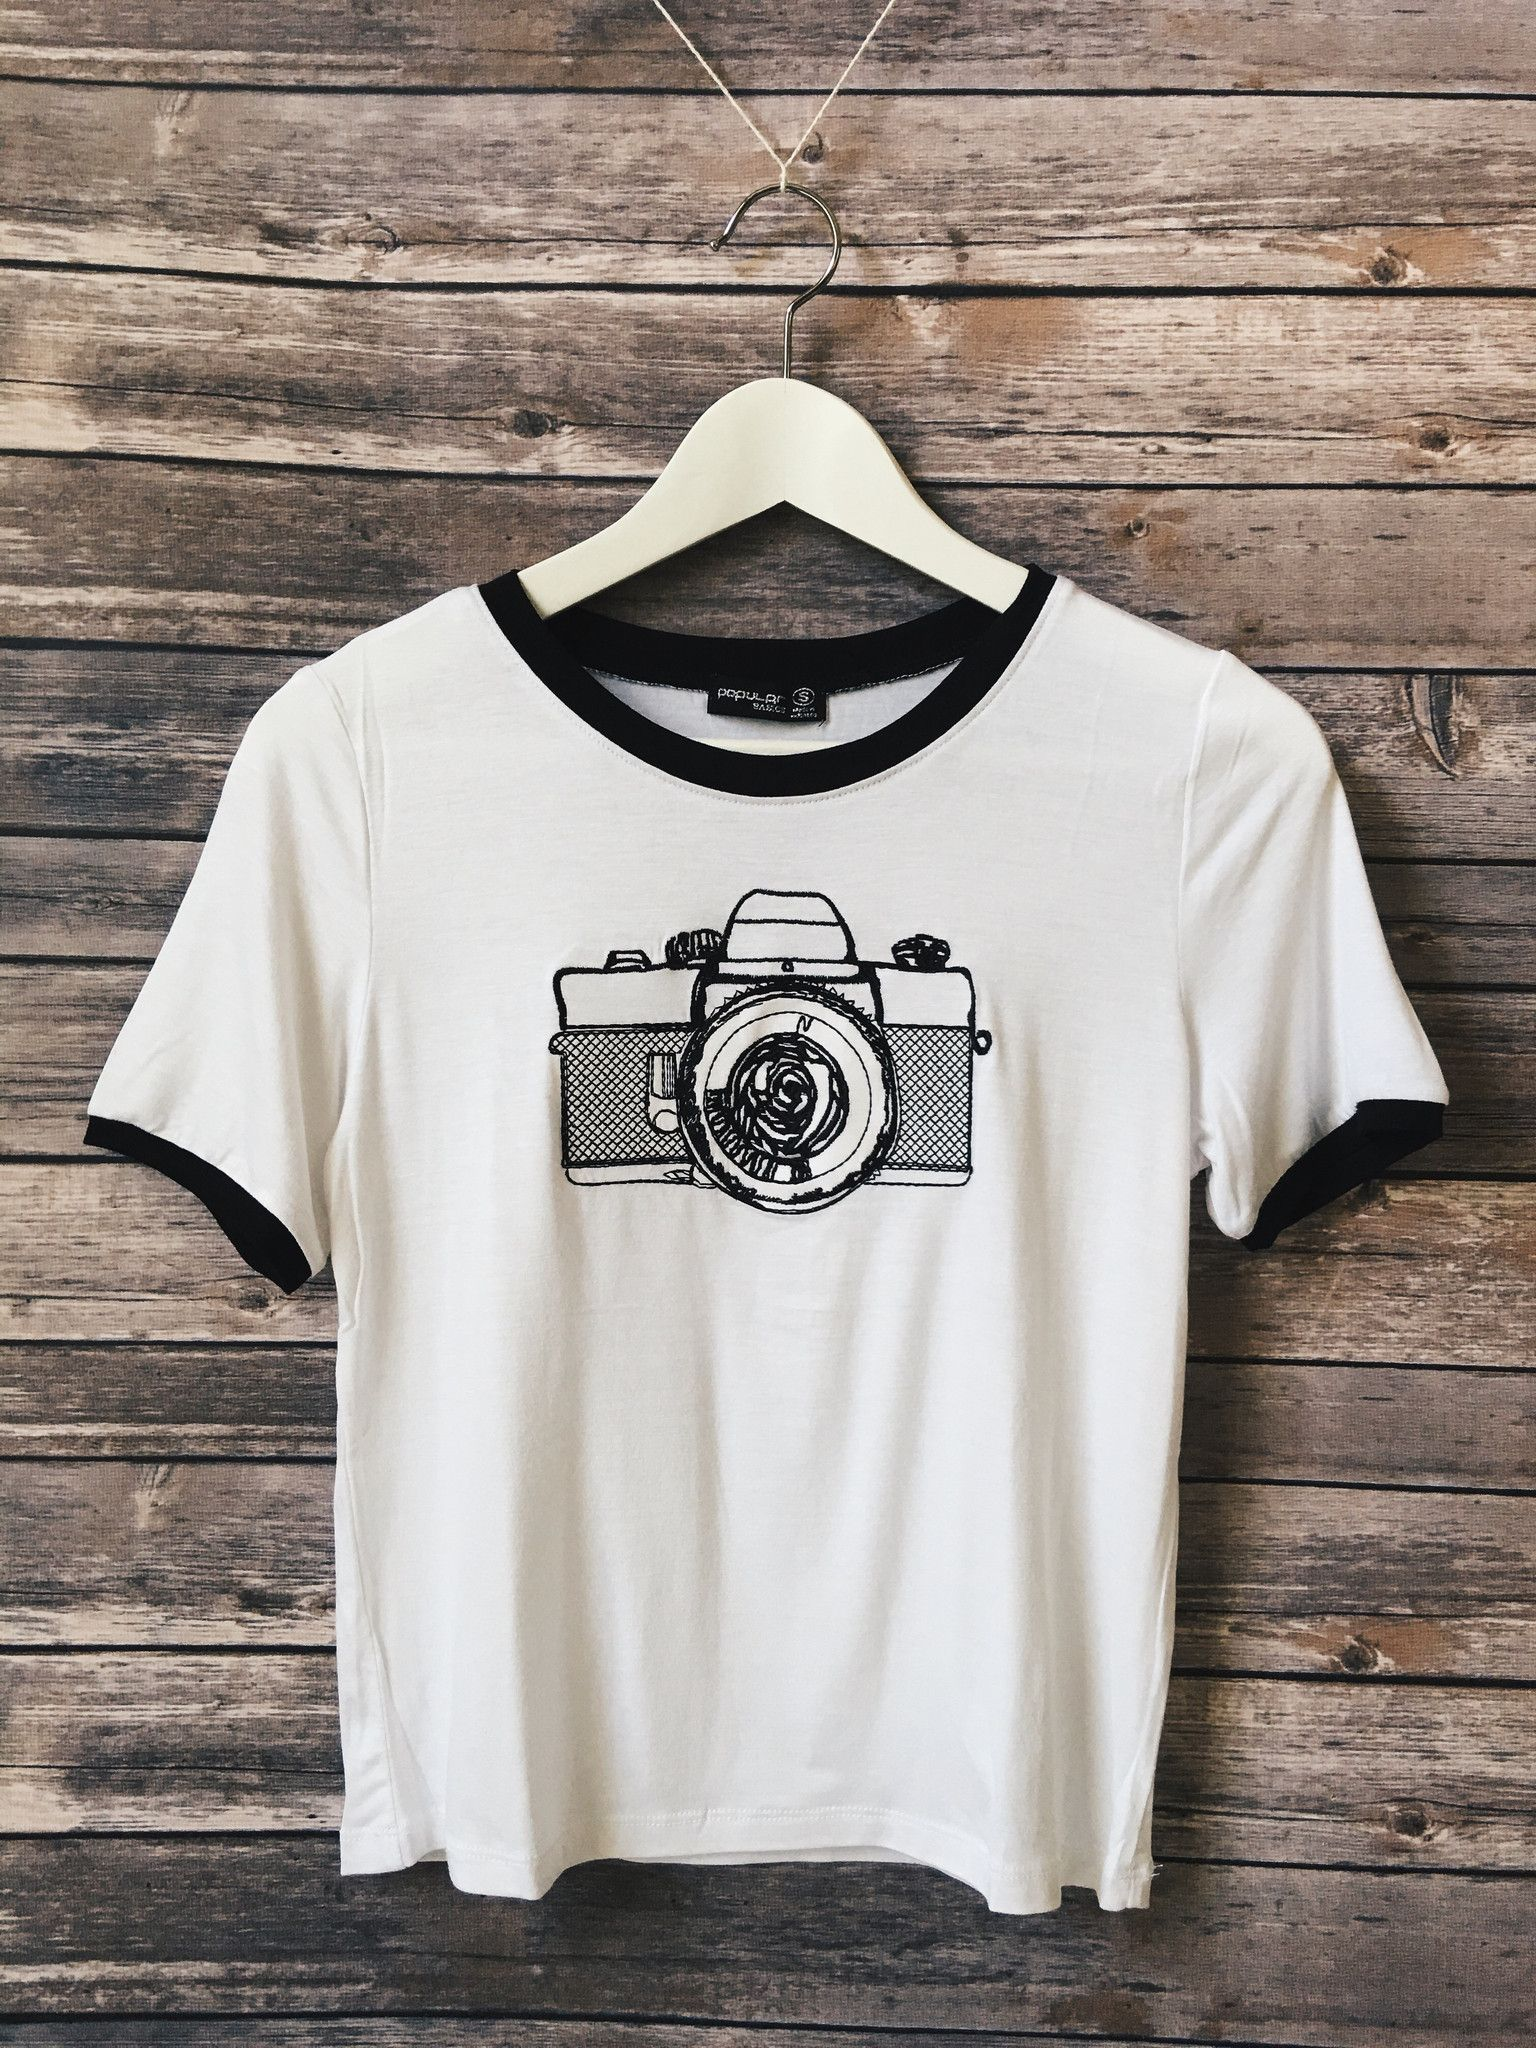 be6f5dda8 Camera Embroidered Ringer Tee | outfits <3 in 2019 | Fashion ...